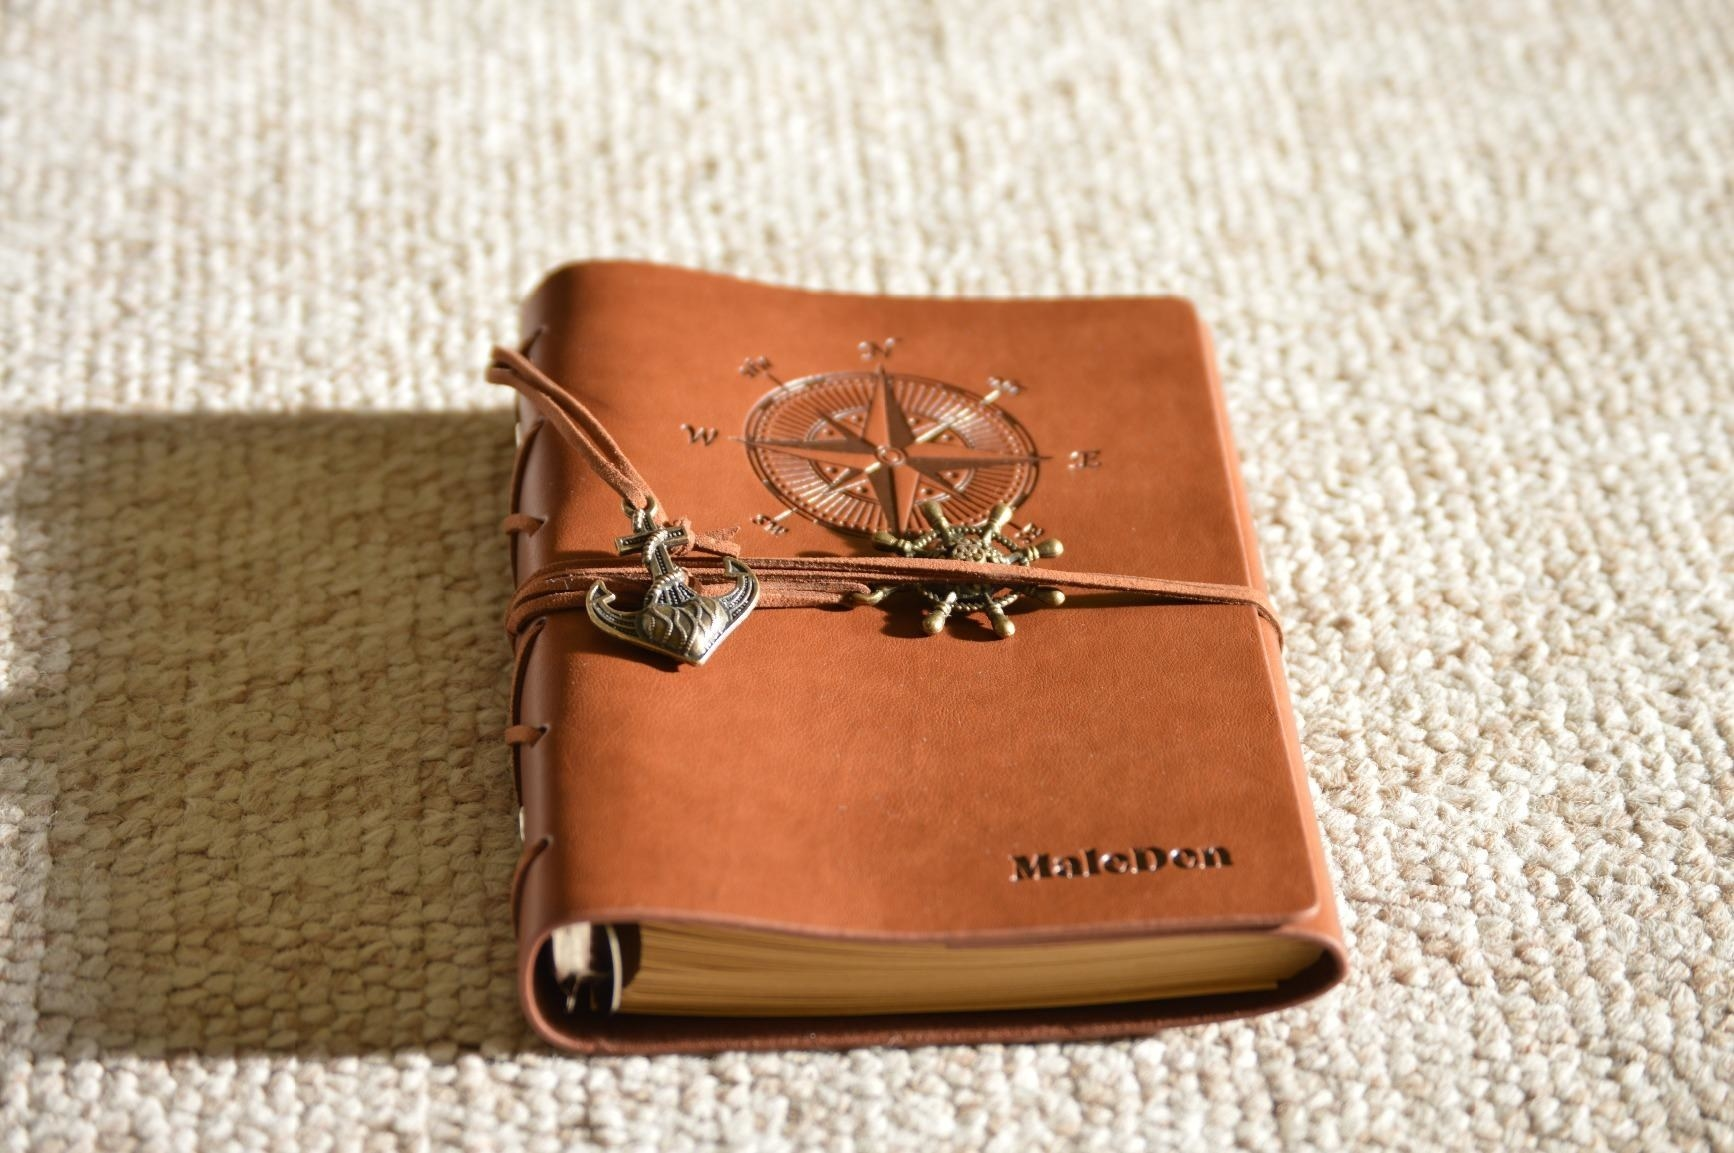 The journal with a brown leather cover engraved with a compass illustration and tie cords with charms around it